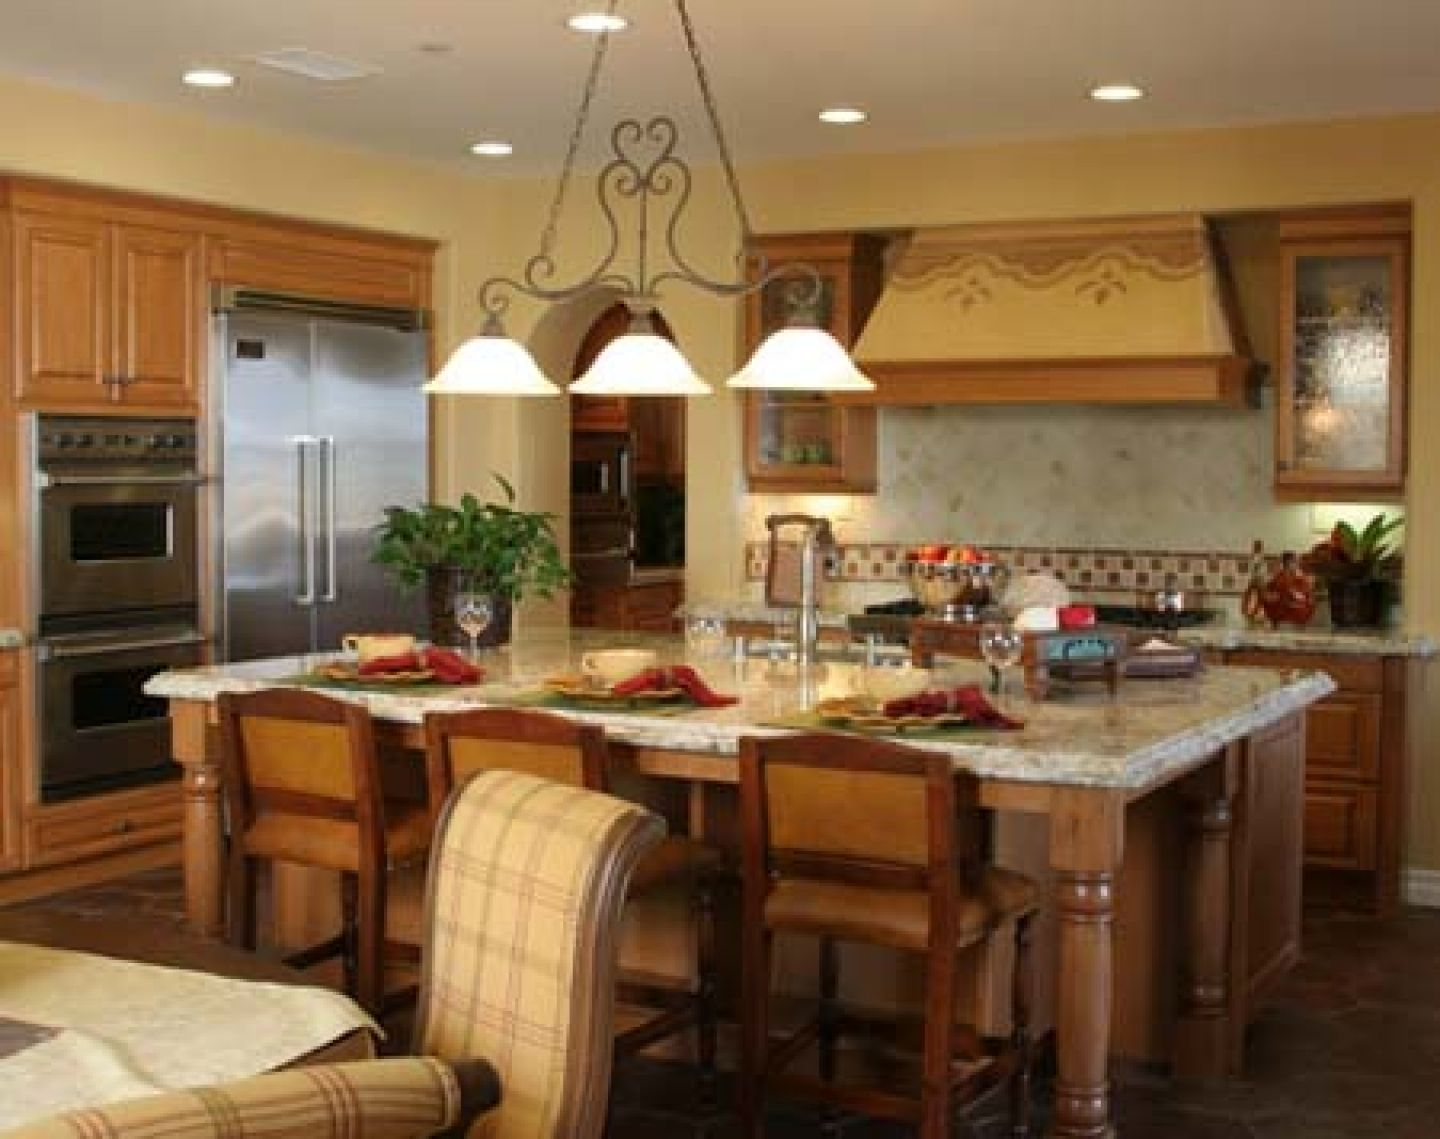 Small country kitchen designs country kitchen designs for Small country kitchen